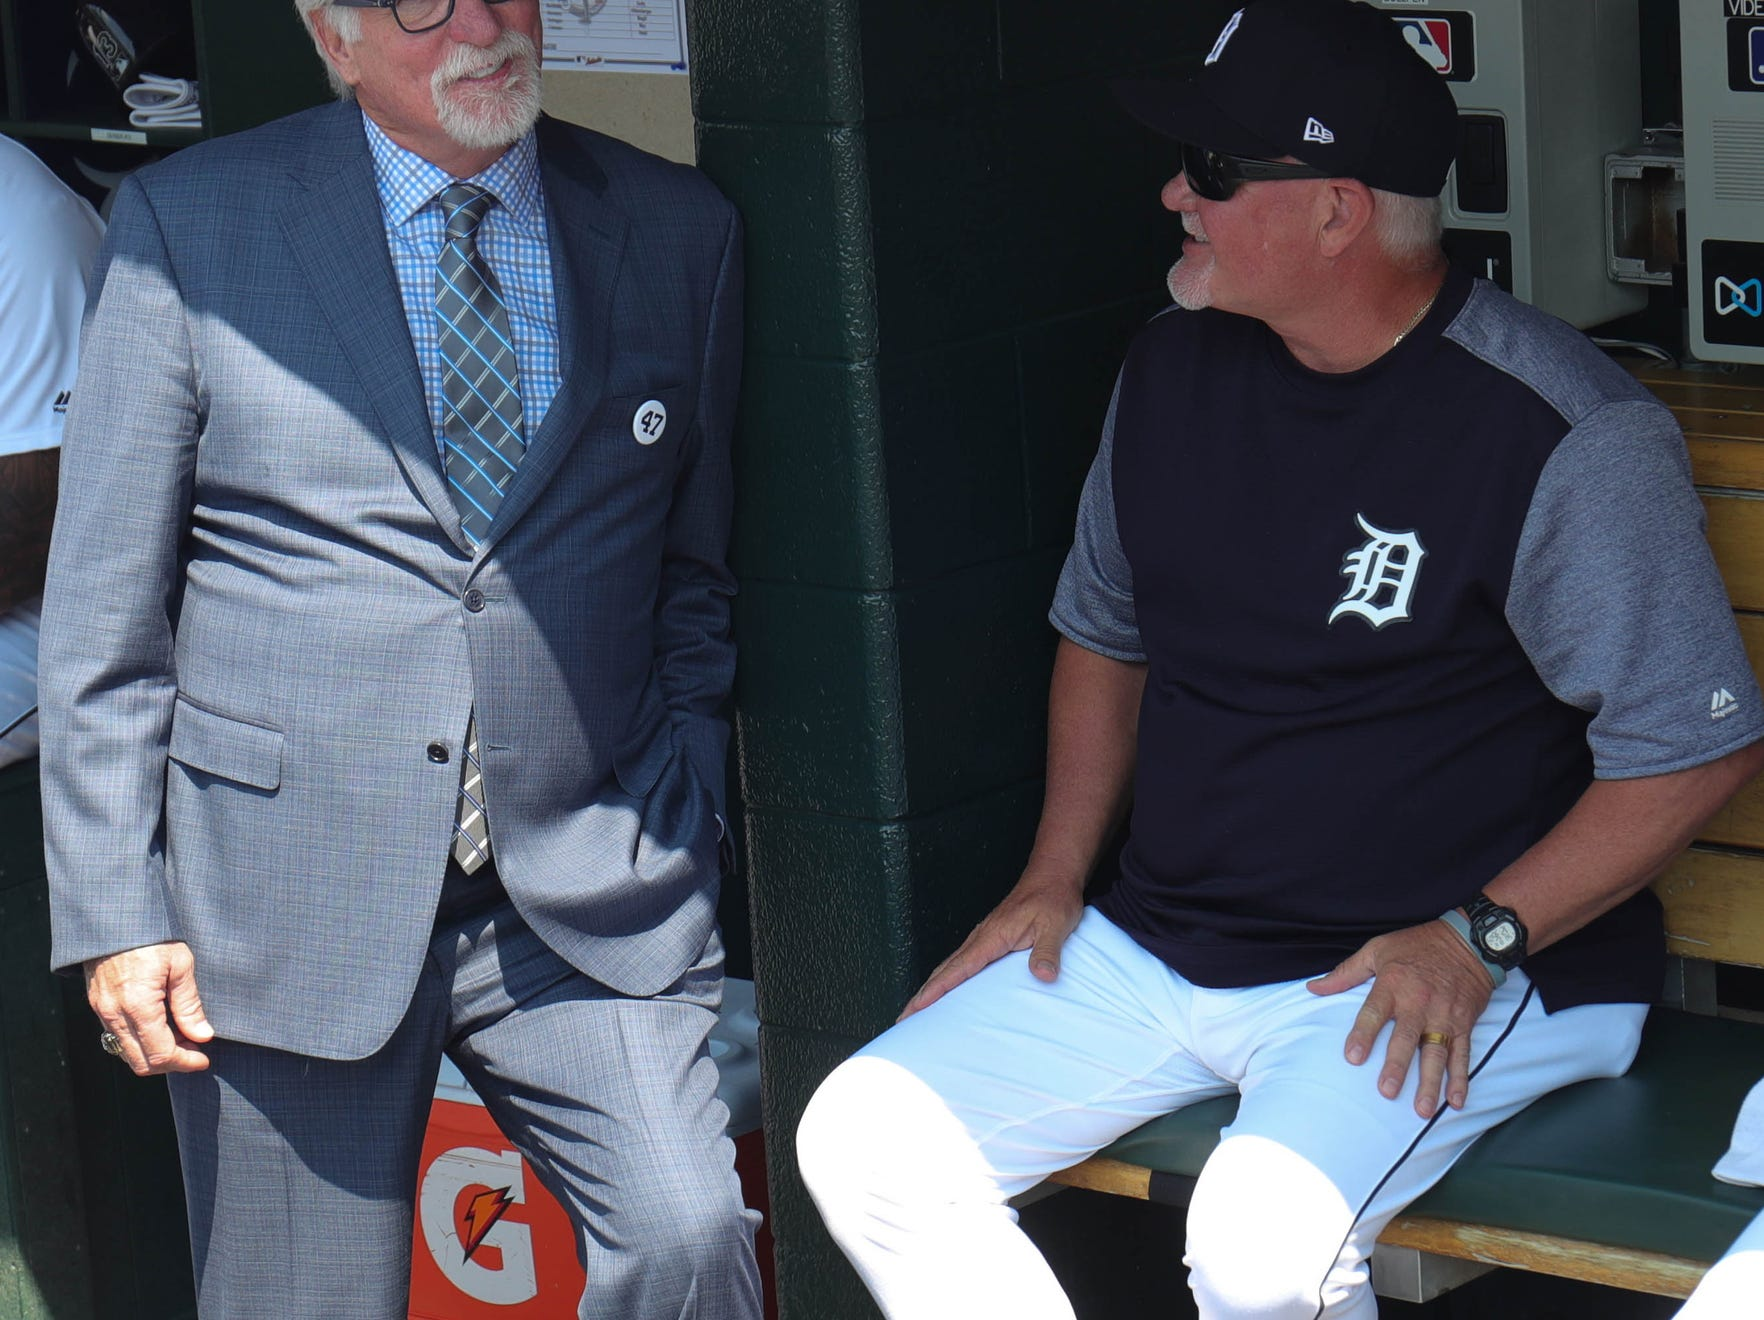 Detroit Tigers Hall of Fame pitcher Jack Morris and manager Ron Gardenhire speak in the dugout before a ceremony in Morris' honor before the start of the Tigers game against Minnesota Sunday, August 12, 2018, at Comerica Park in Detroit.